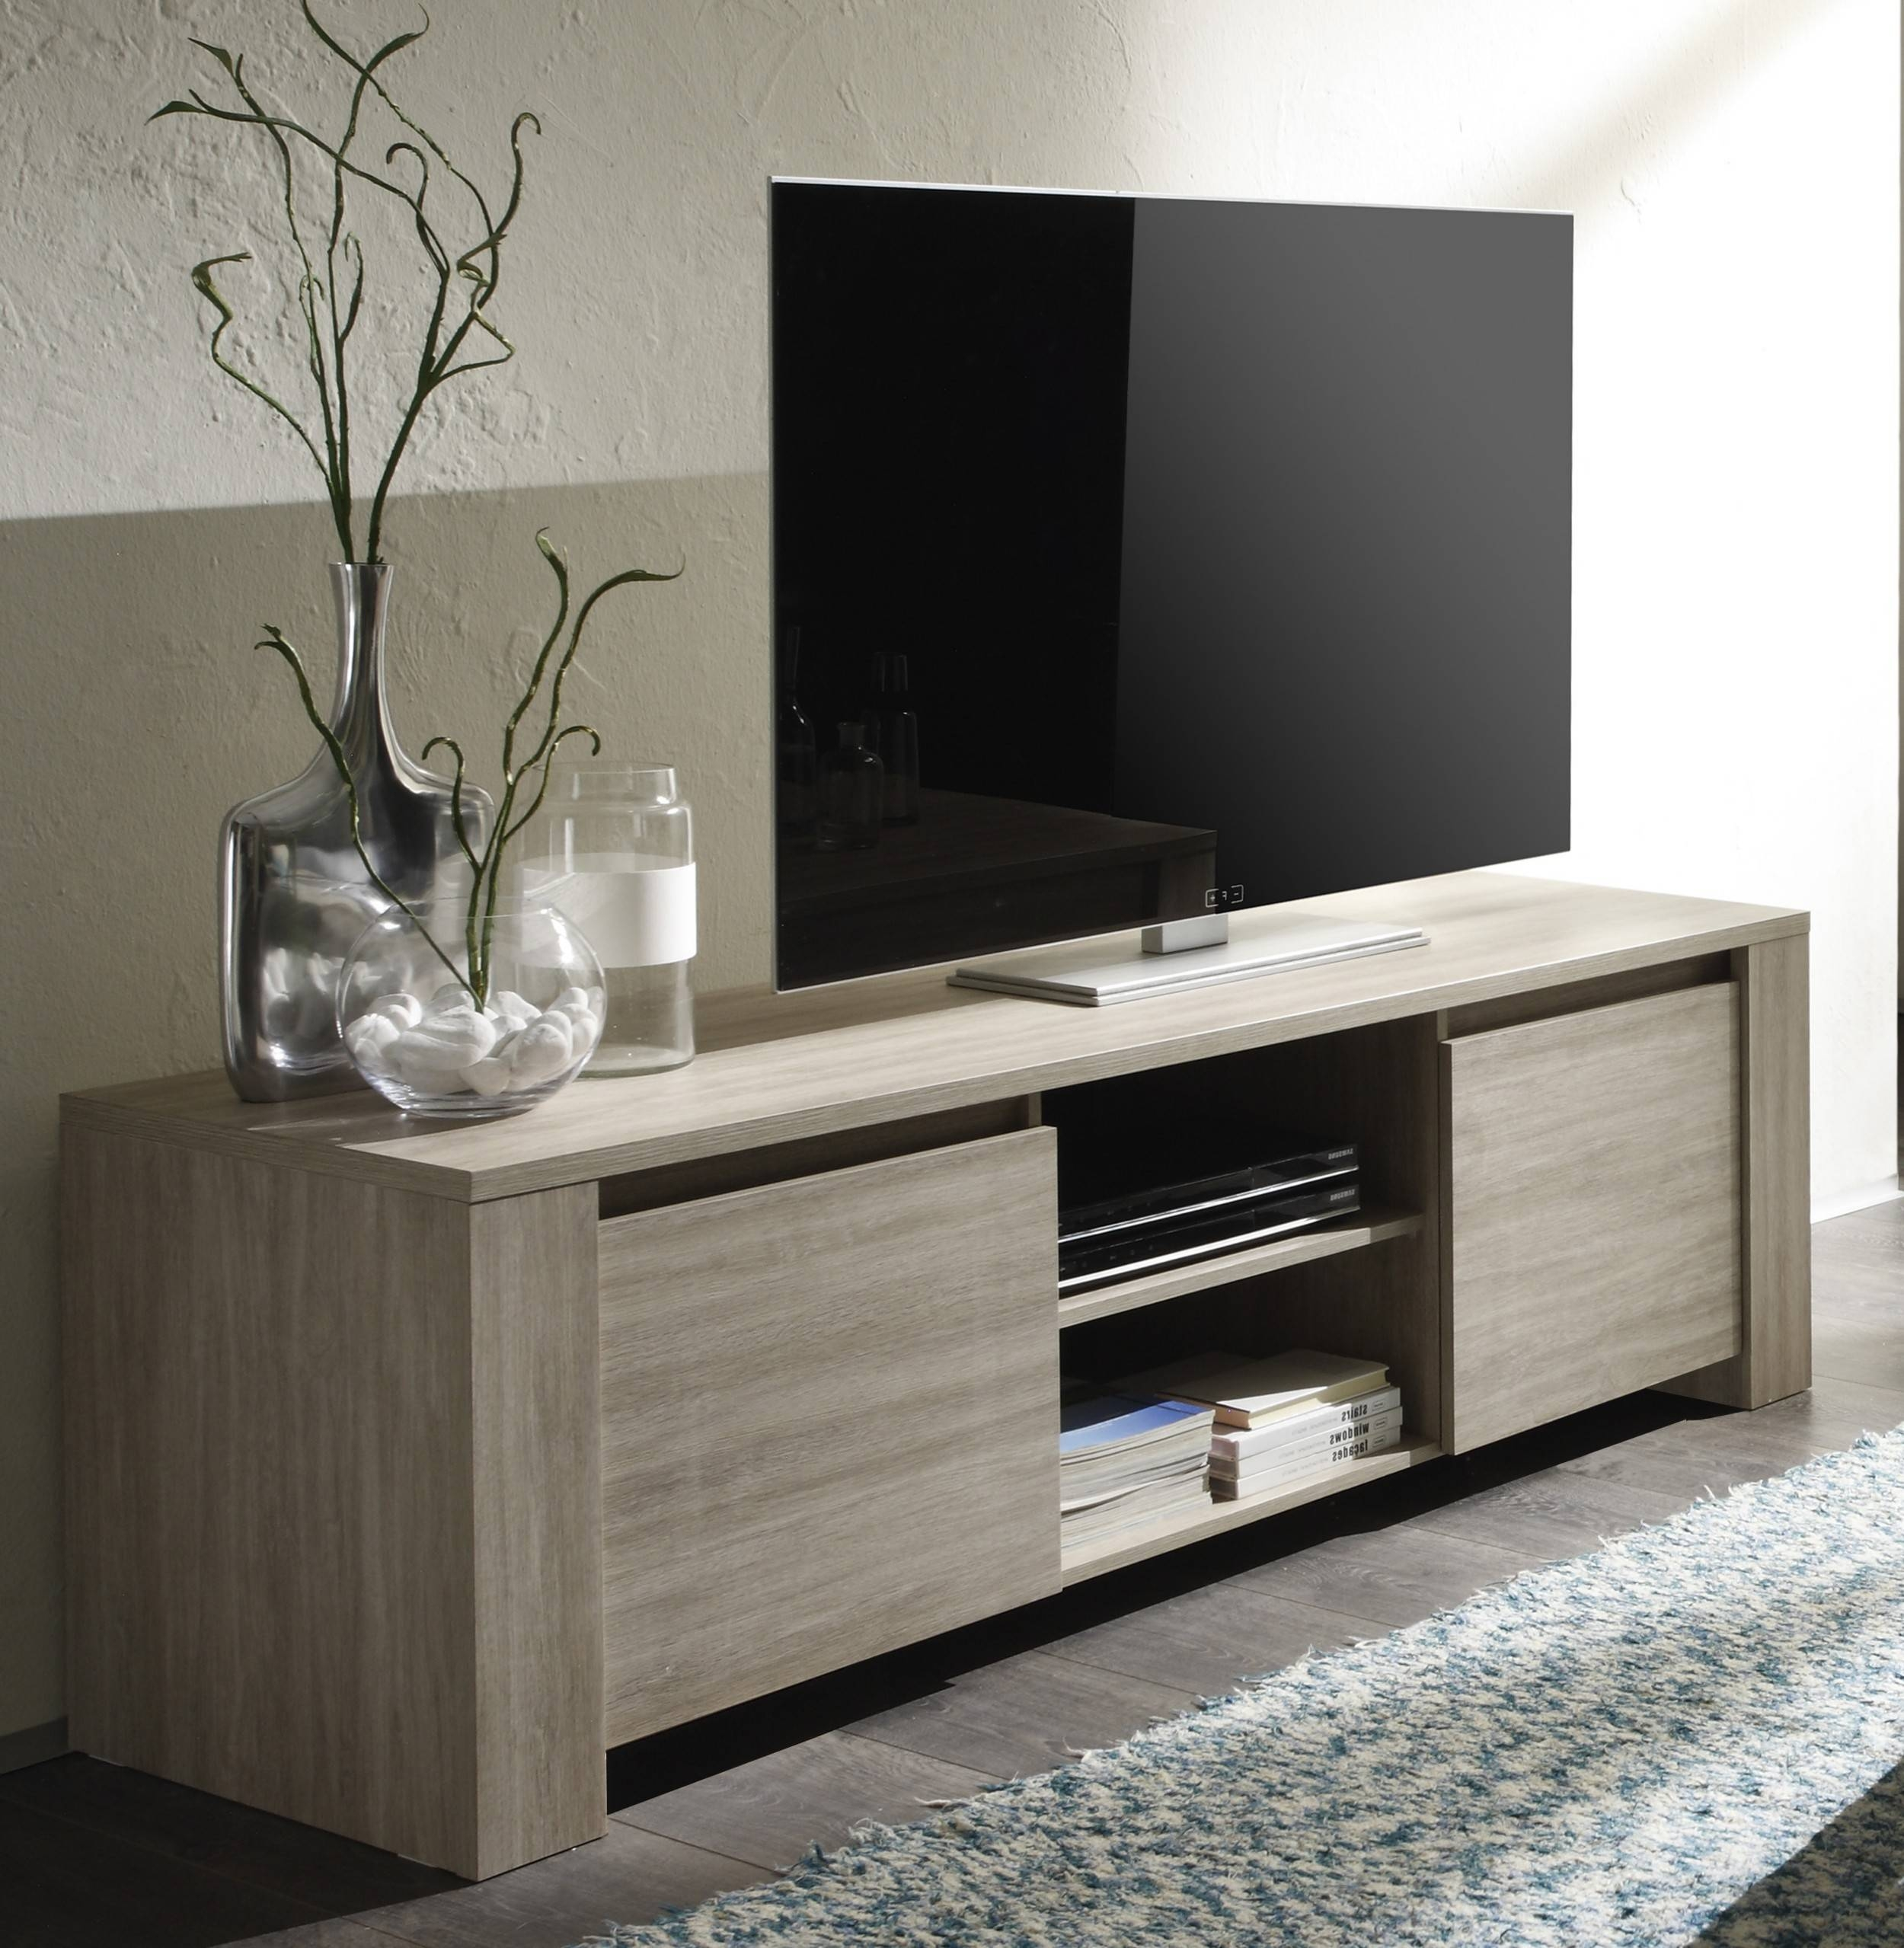 Elba Sideboard Buy Online At Best Price – Sohomod Within Sideboards And Tv Stands (View 9 of 30)